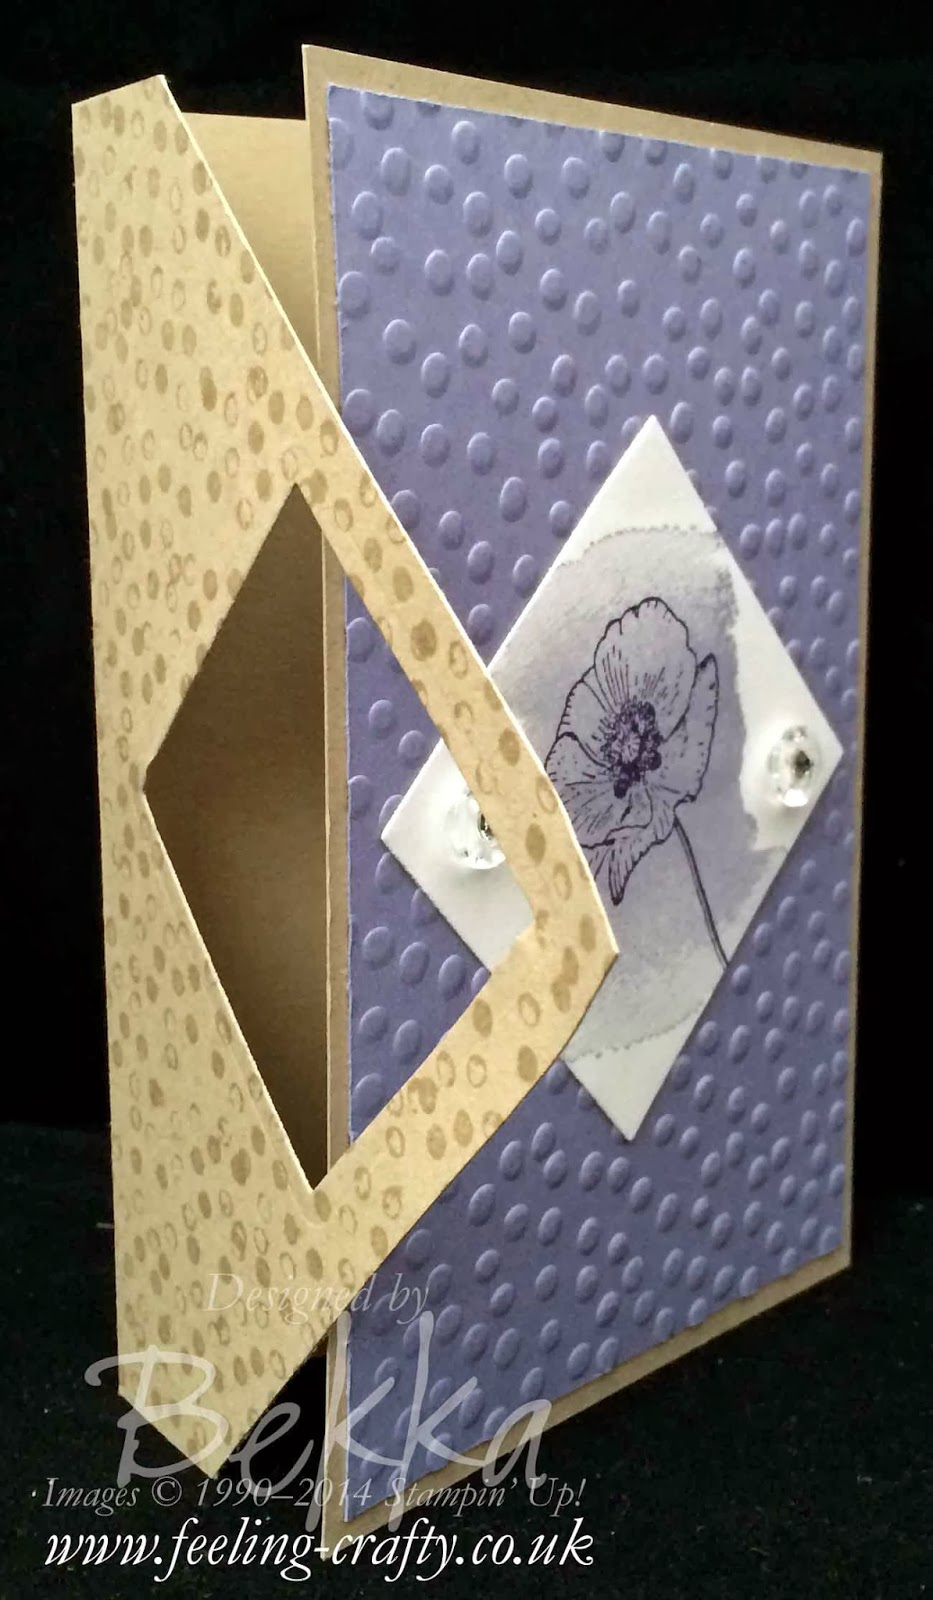 Happy Watercolor Fancy Fold Card by UK based Stampin' Up! demonstrator Bekka Prideaux - she has a card class featuring this stamp set!  If you can't go in person her class is available by post - must check it out